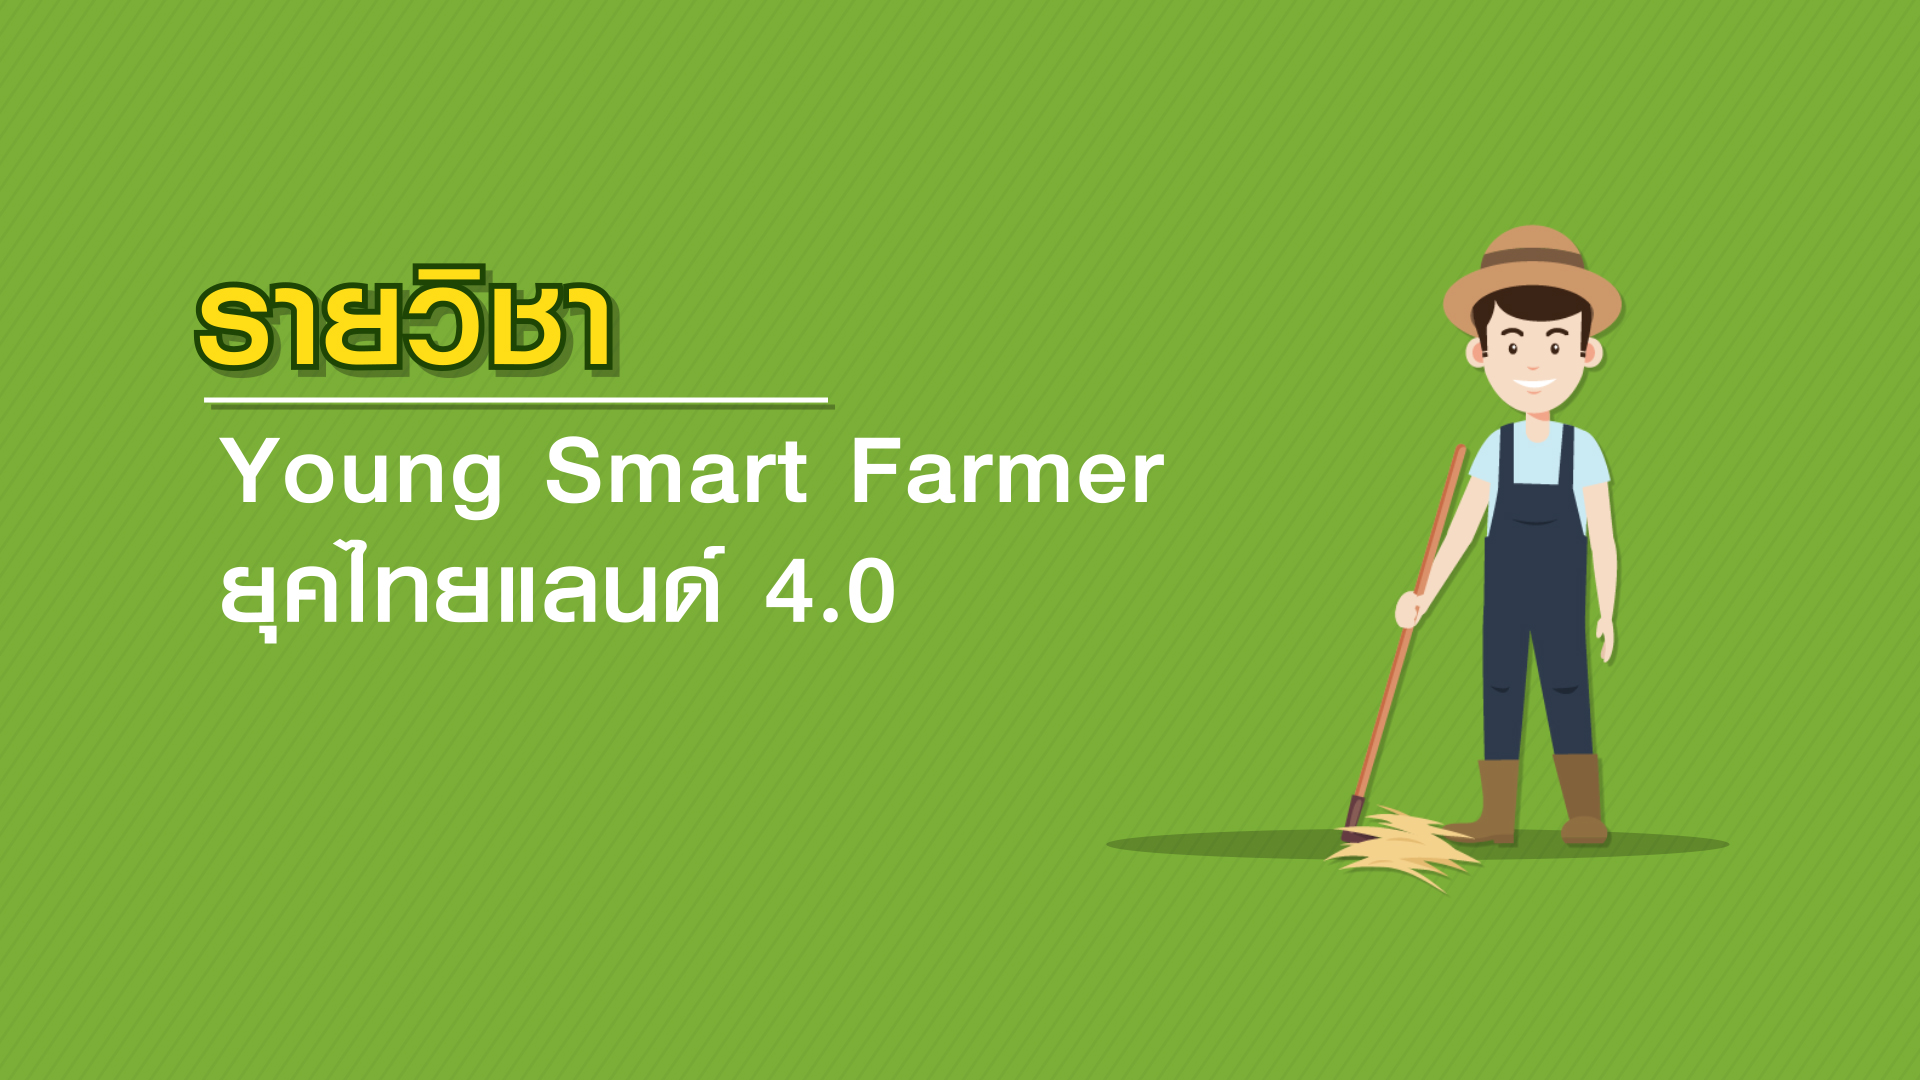 Young Smart Farmer ยุคไทยแลนด์ 4.0 (Young Smart Farmers in Thailand 4.0) stou016